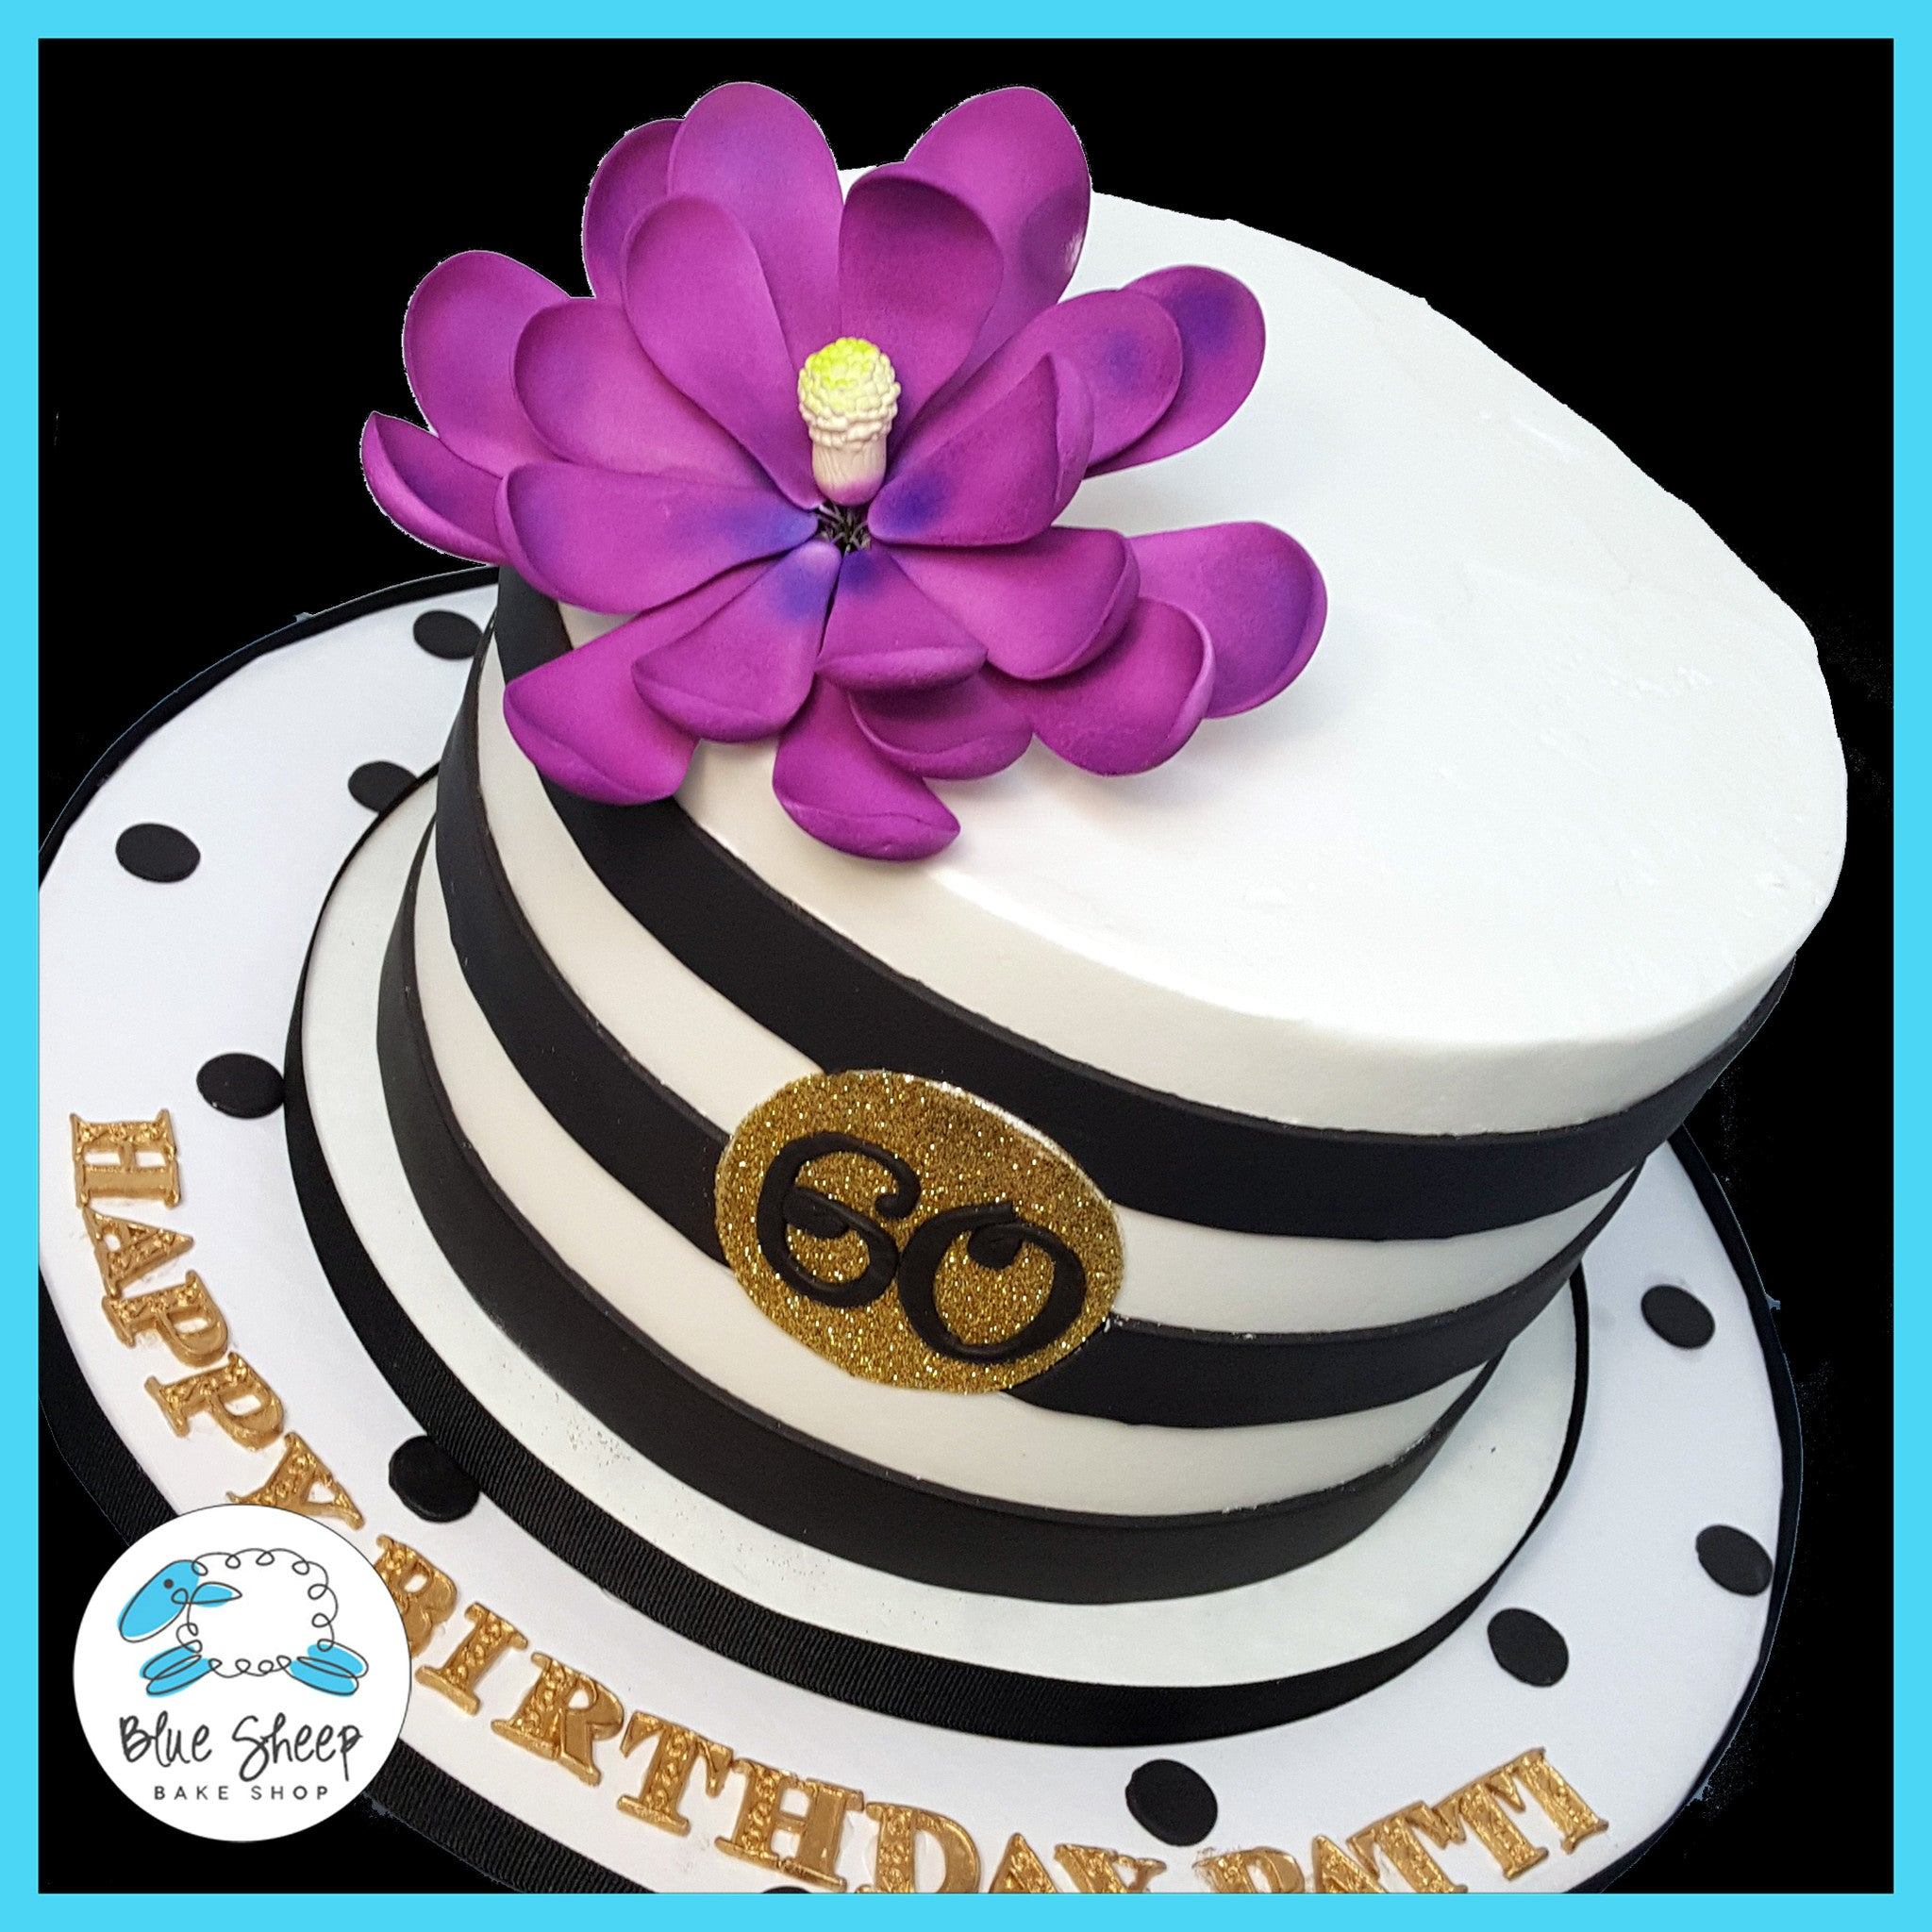 Black and white striped couture birthday cake blue sheep bake shop black and white striped birthday cake nj izmirmasajfo